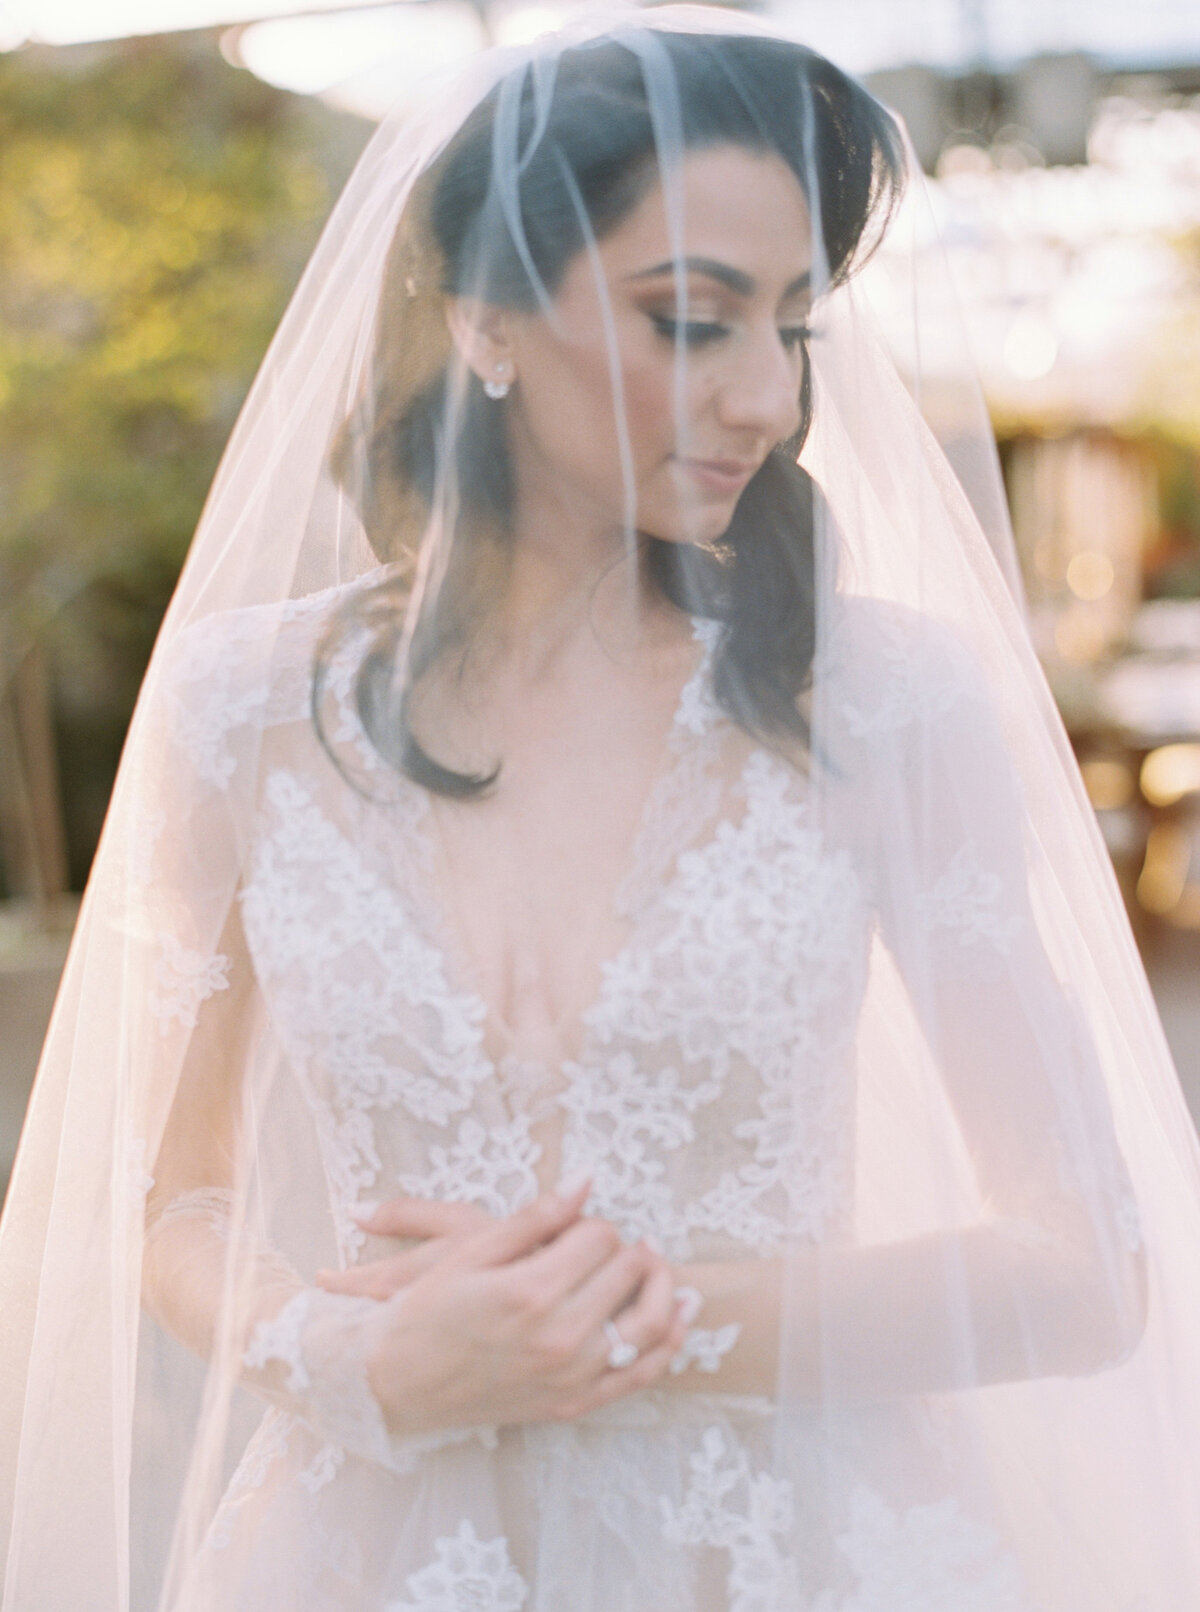 Kaylea Moreno_wedding gallery - Rami-Cassandra-Wedding-krmorenophoto-320